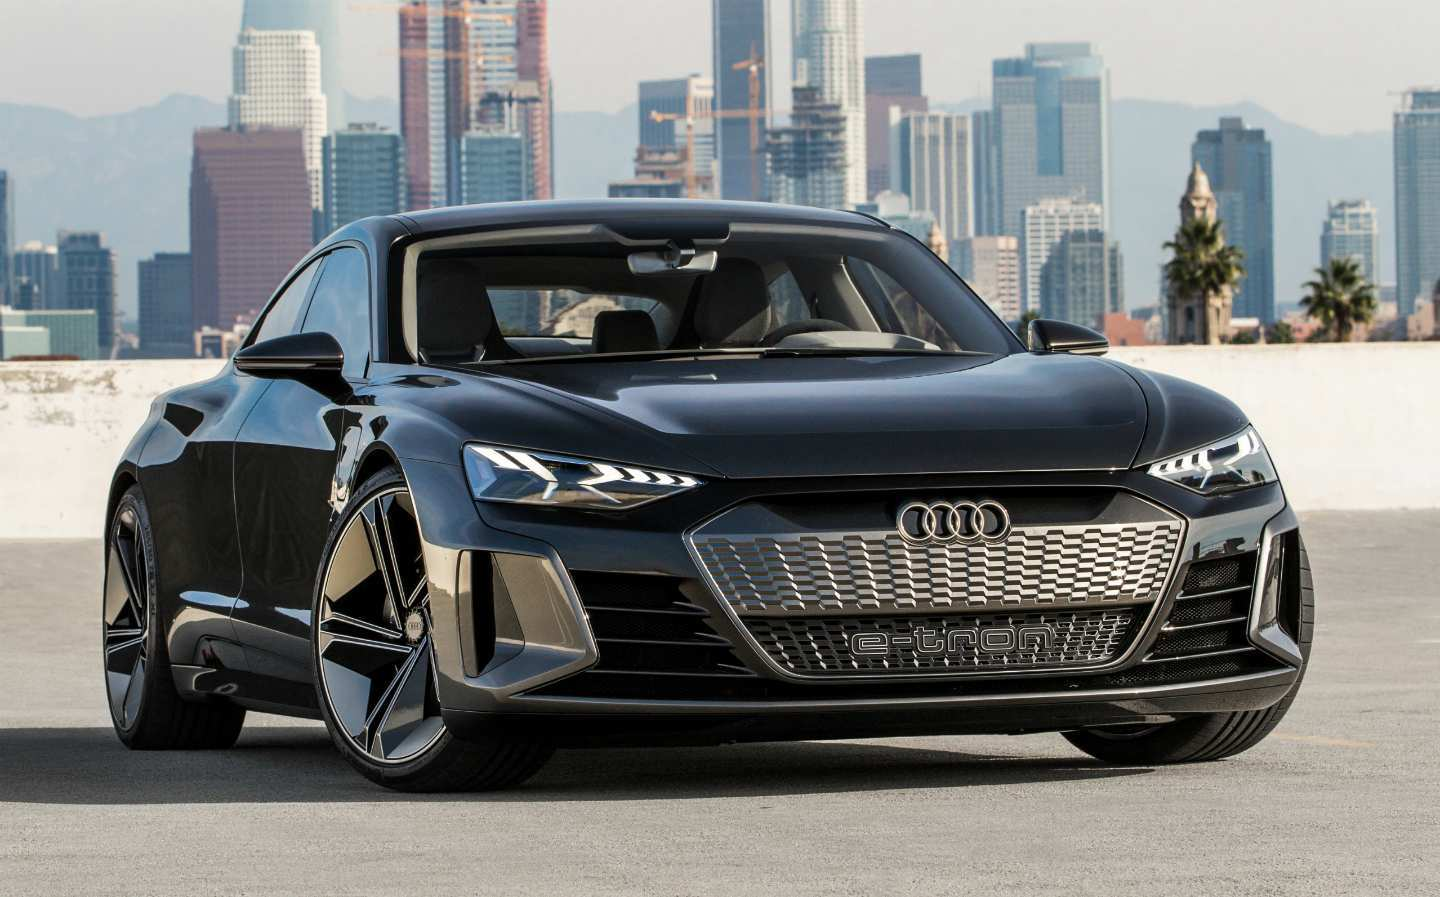 94 The Best Audi New Electric Car 2020 Review